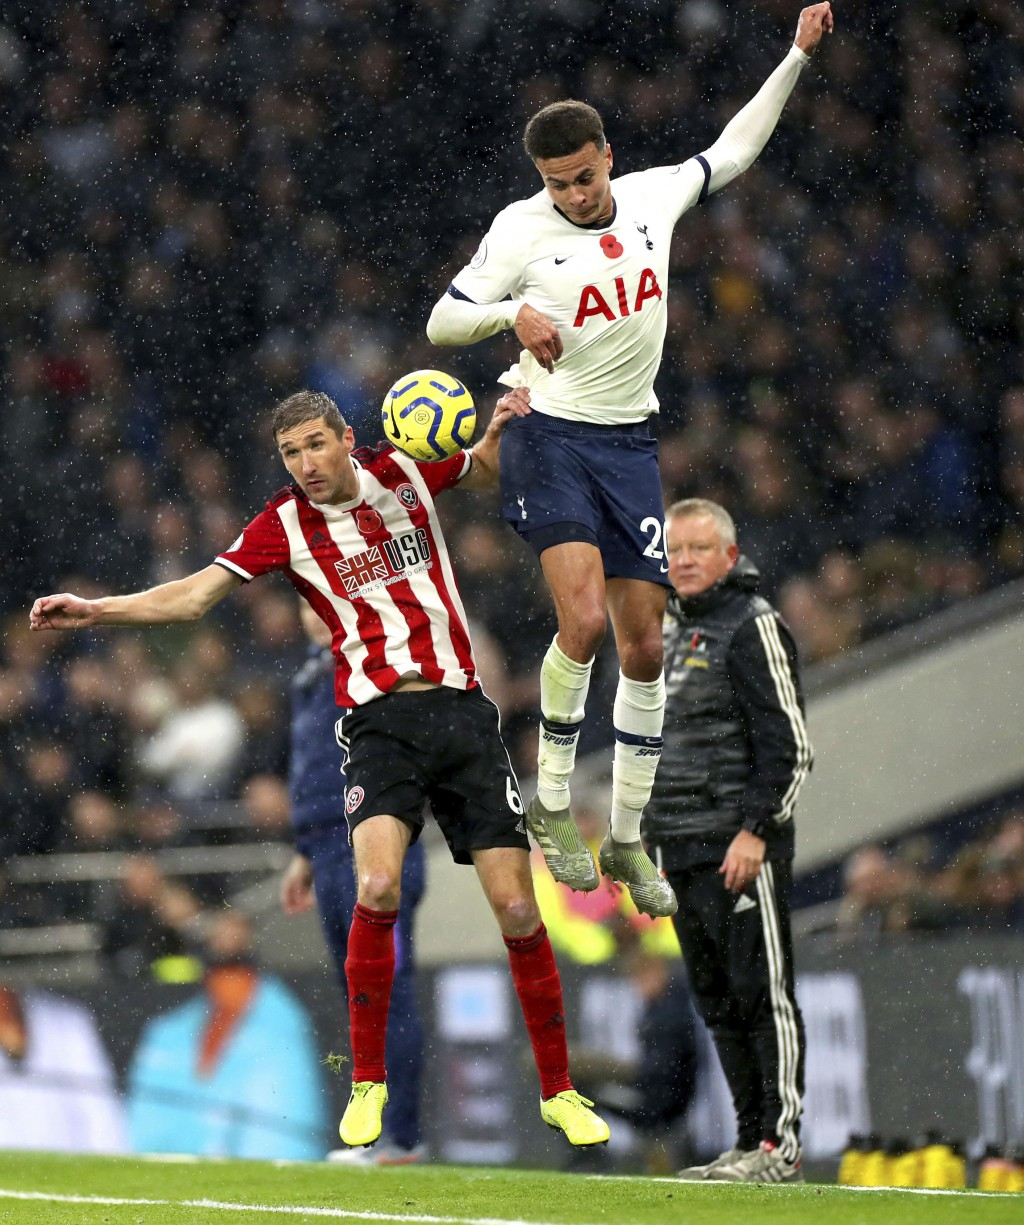 Sheffield United's Chris Basham, left and Tottenham Hotspur's Dele Alli battle for the ball, during the English Premier League soccer match between To...